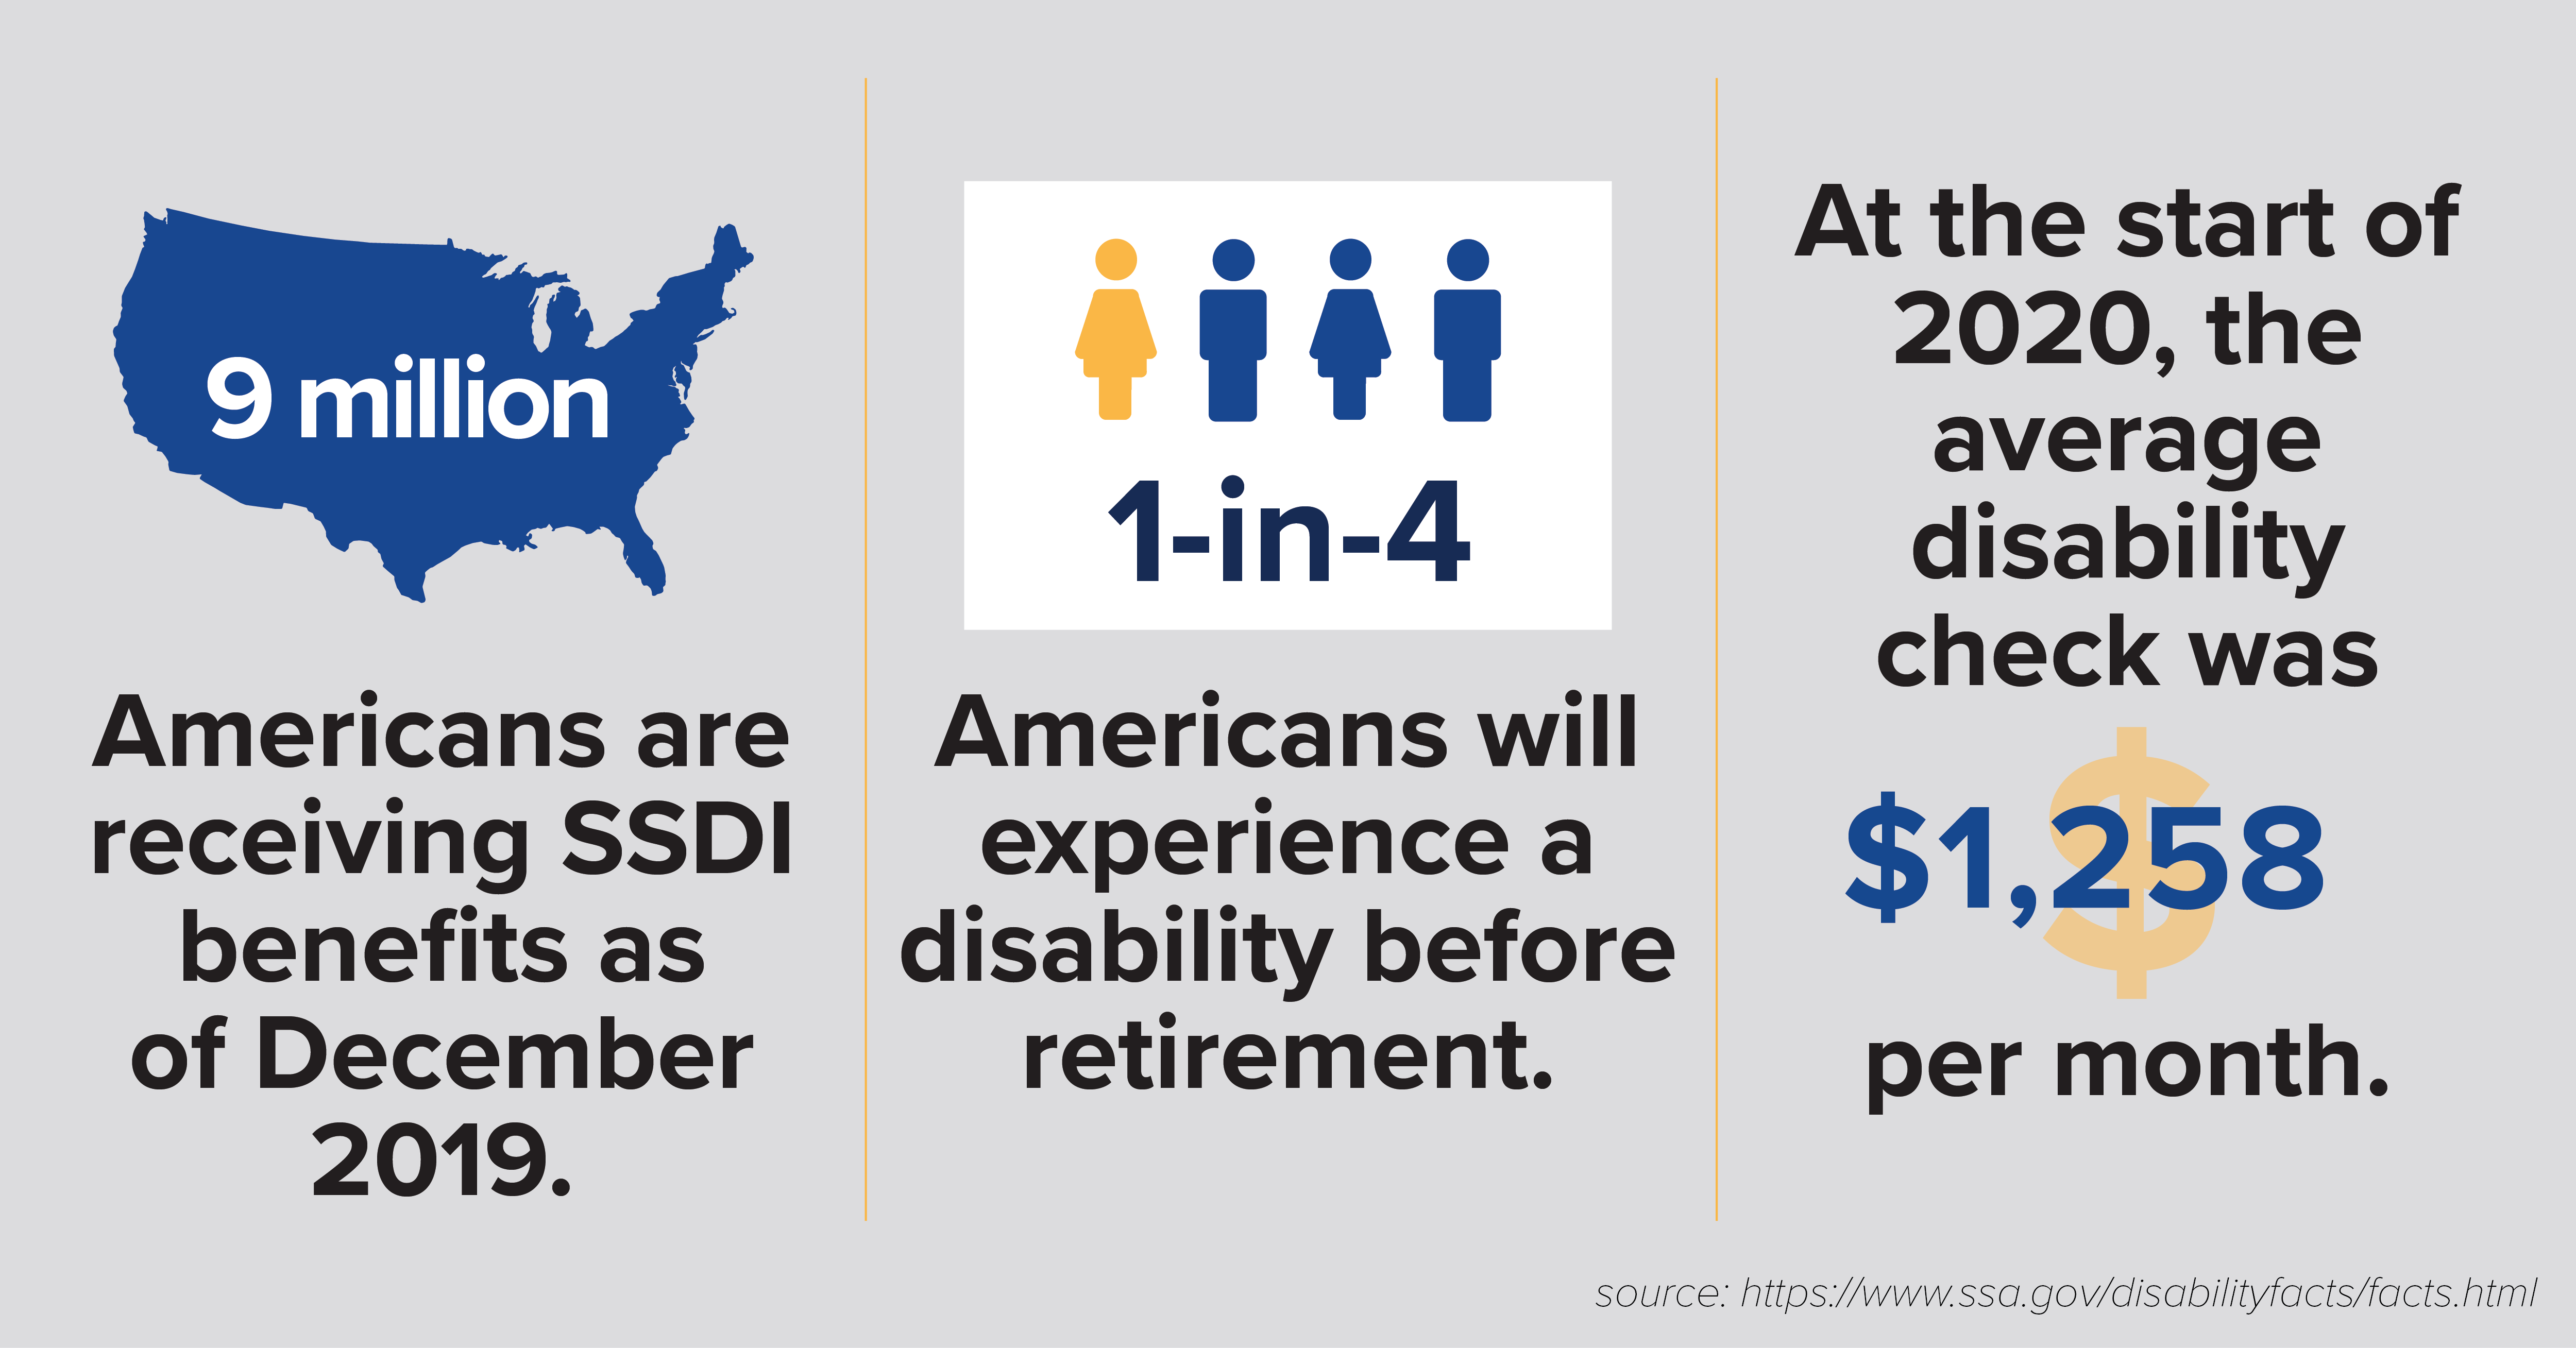 9 million Americans are receiving SSDI benefits as of December 2019. 1 in 4 Americans will experience a disability before retirement. At the start of 202, the average disability check was $1,258 per month.